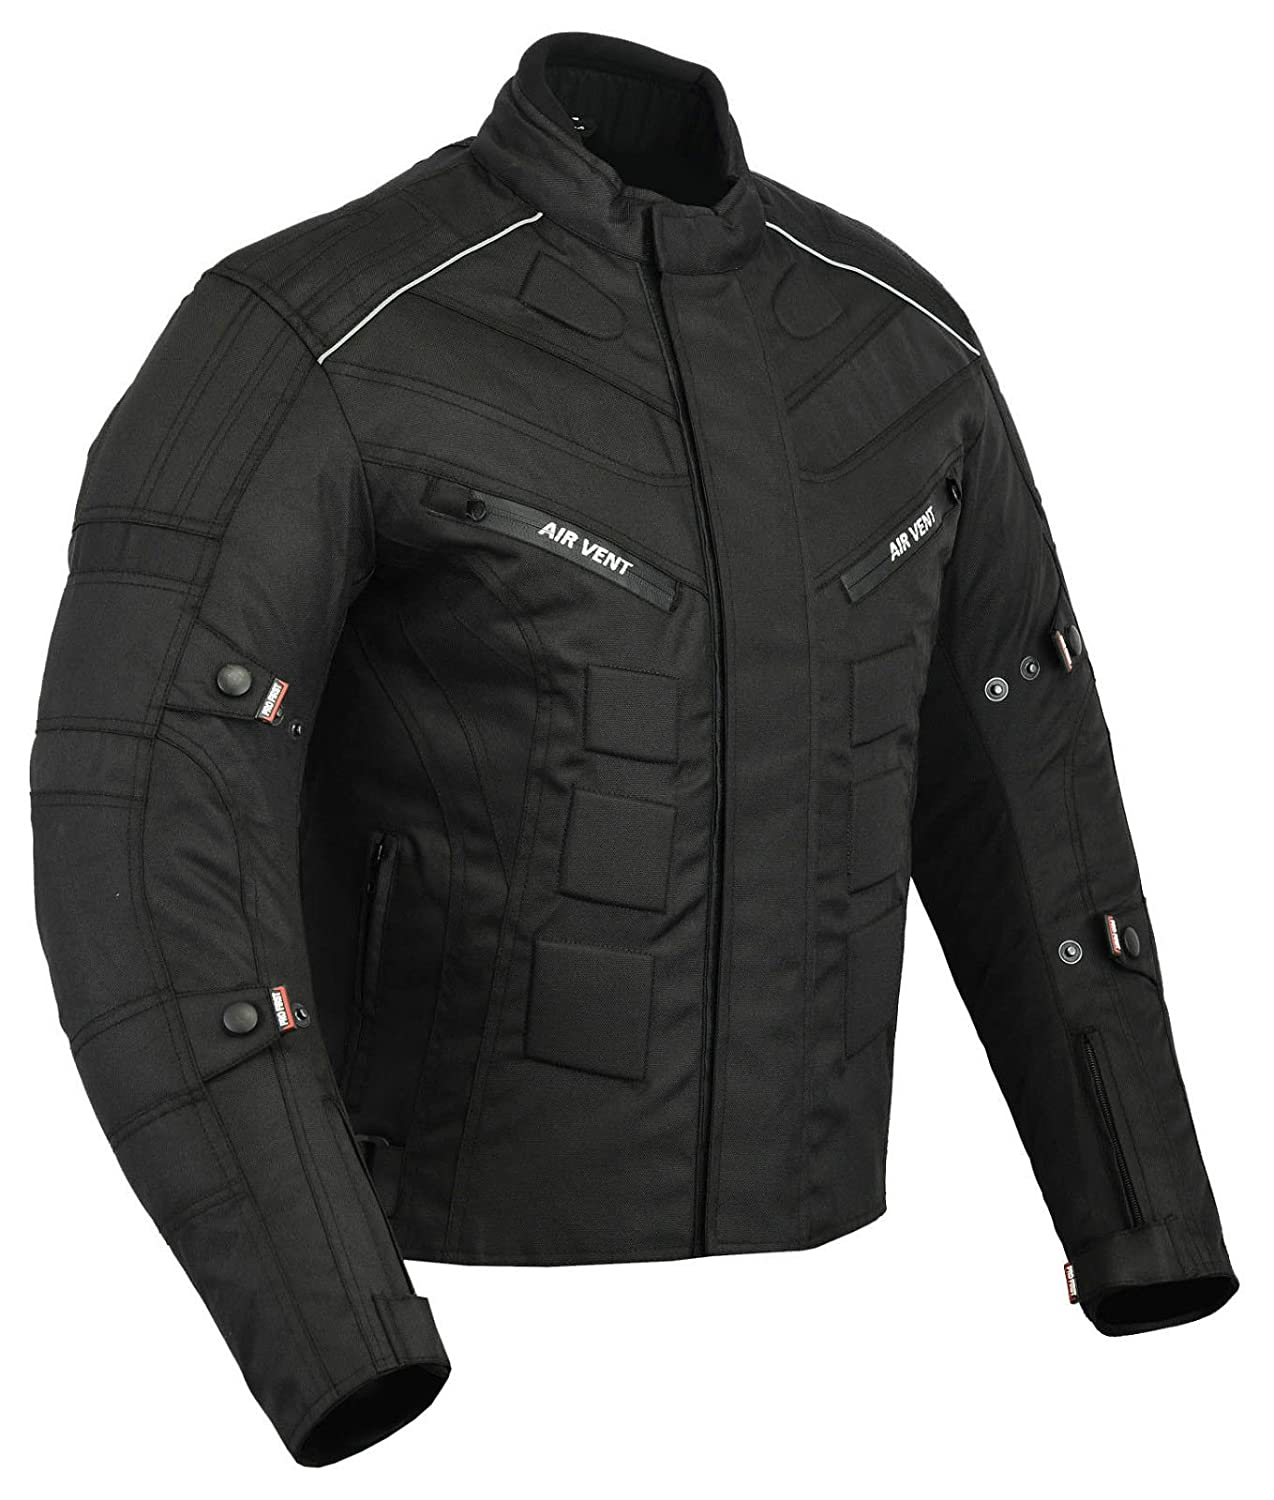 Waterproof Motorbike Motorcycle Jacket in Cordura Fabric and CE Approved Armour Black /& Green, X-Small JKT-007 6 Packs Design Most Popular